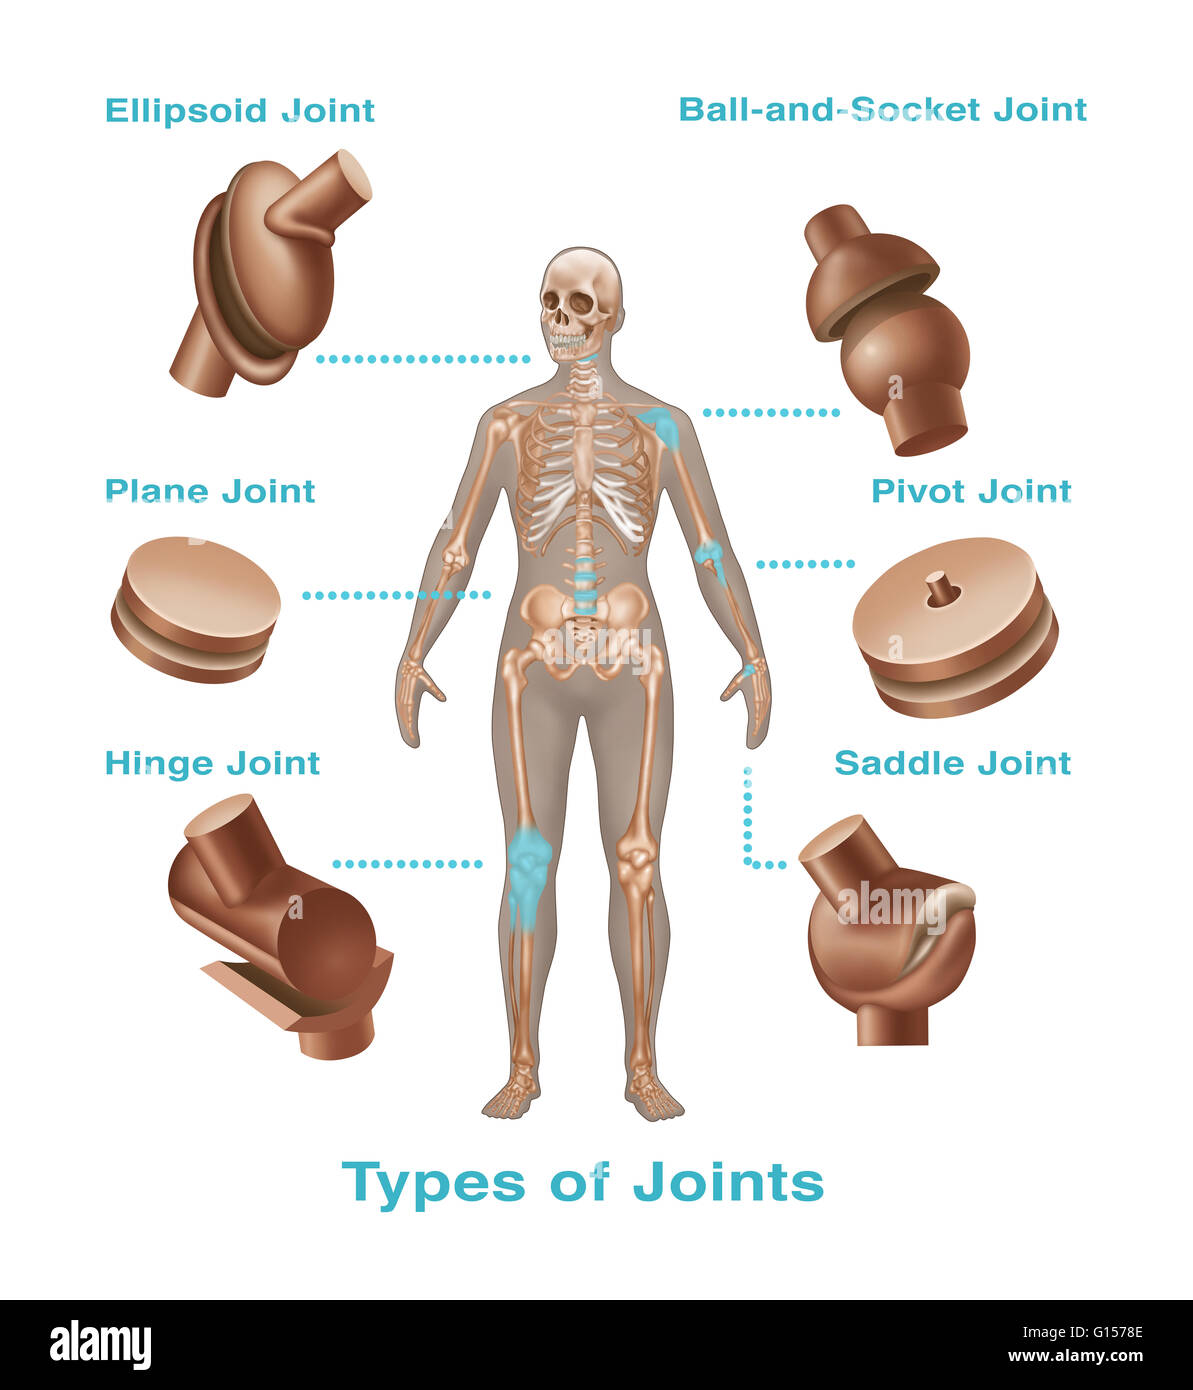 Pivot Joint Stock Photos Pivot Joint Stock Images Alamy